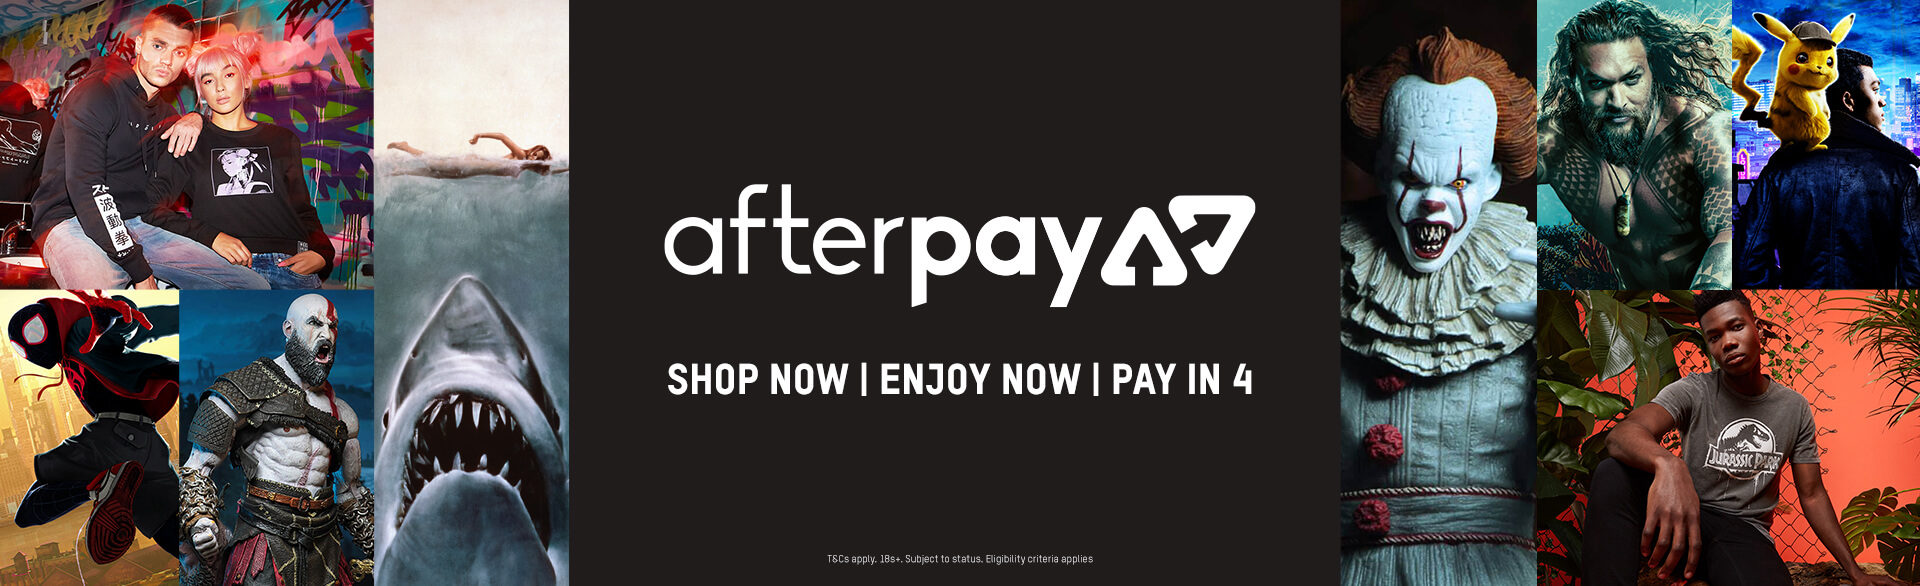 AFTER PAY